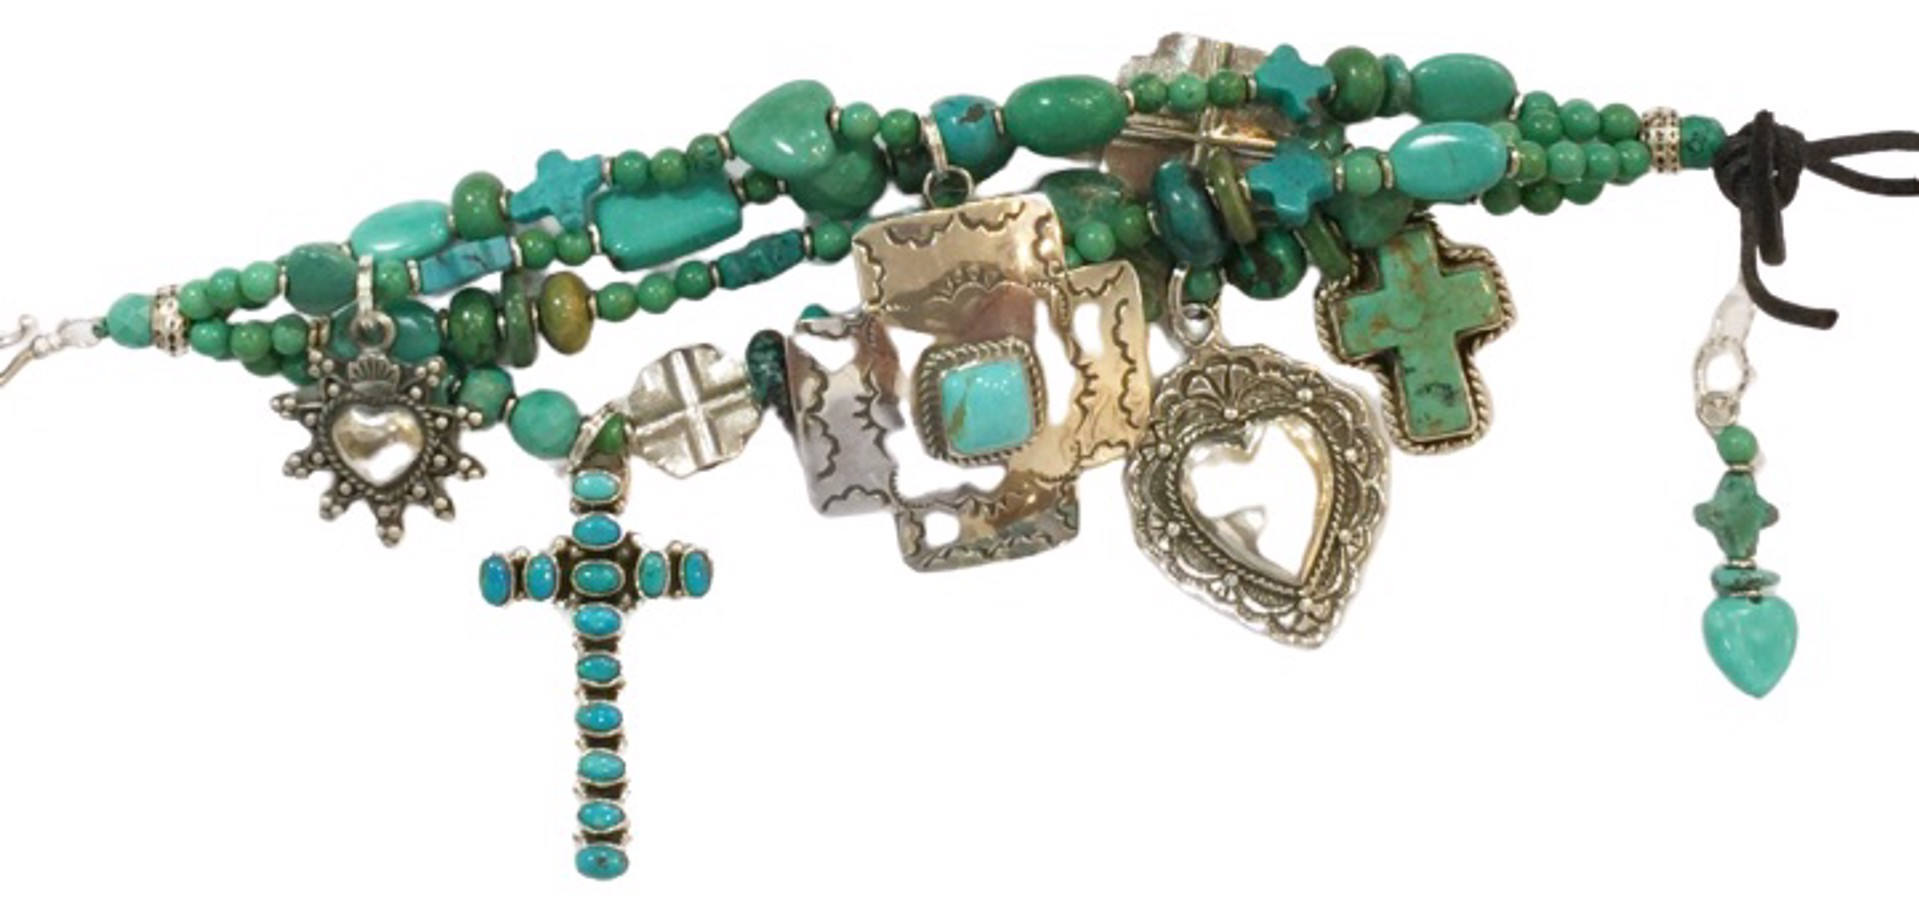 KY 1356C - Heart & Cross Bracelet, Turquoise & Sterling Silver by Kim Yubeta